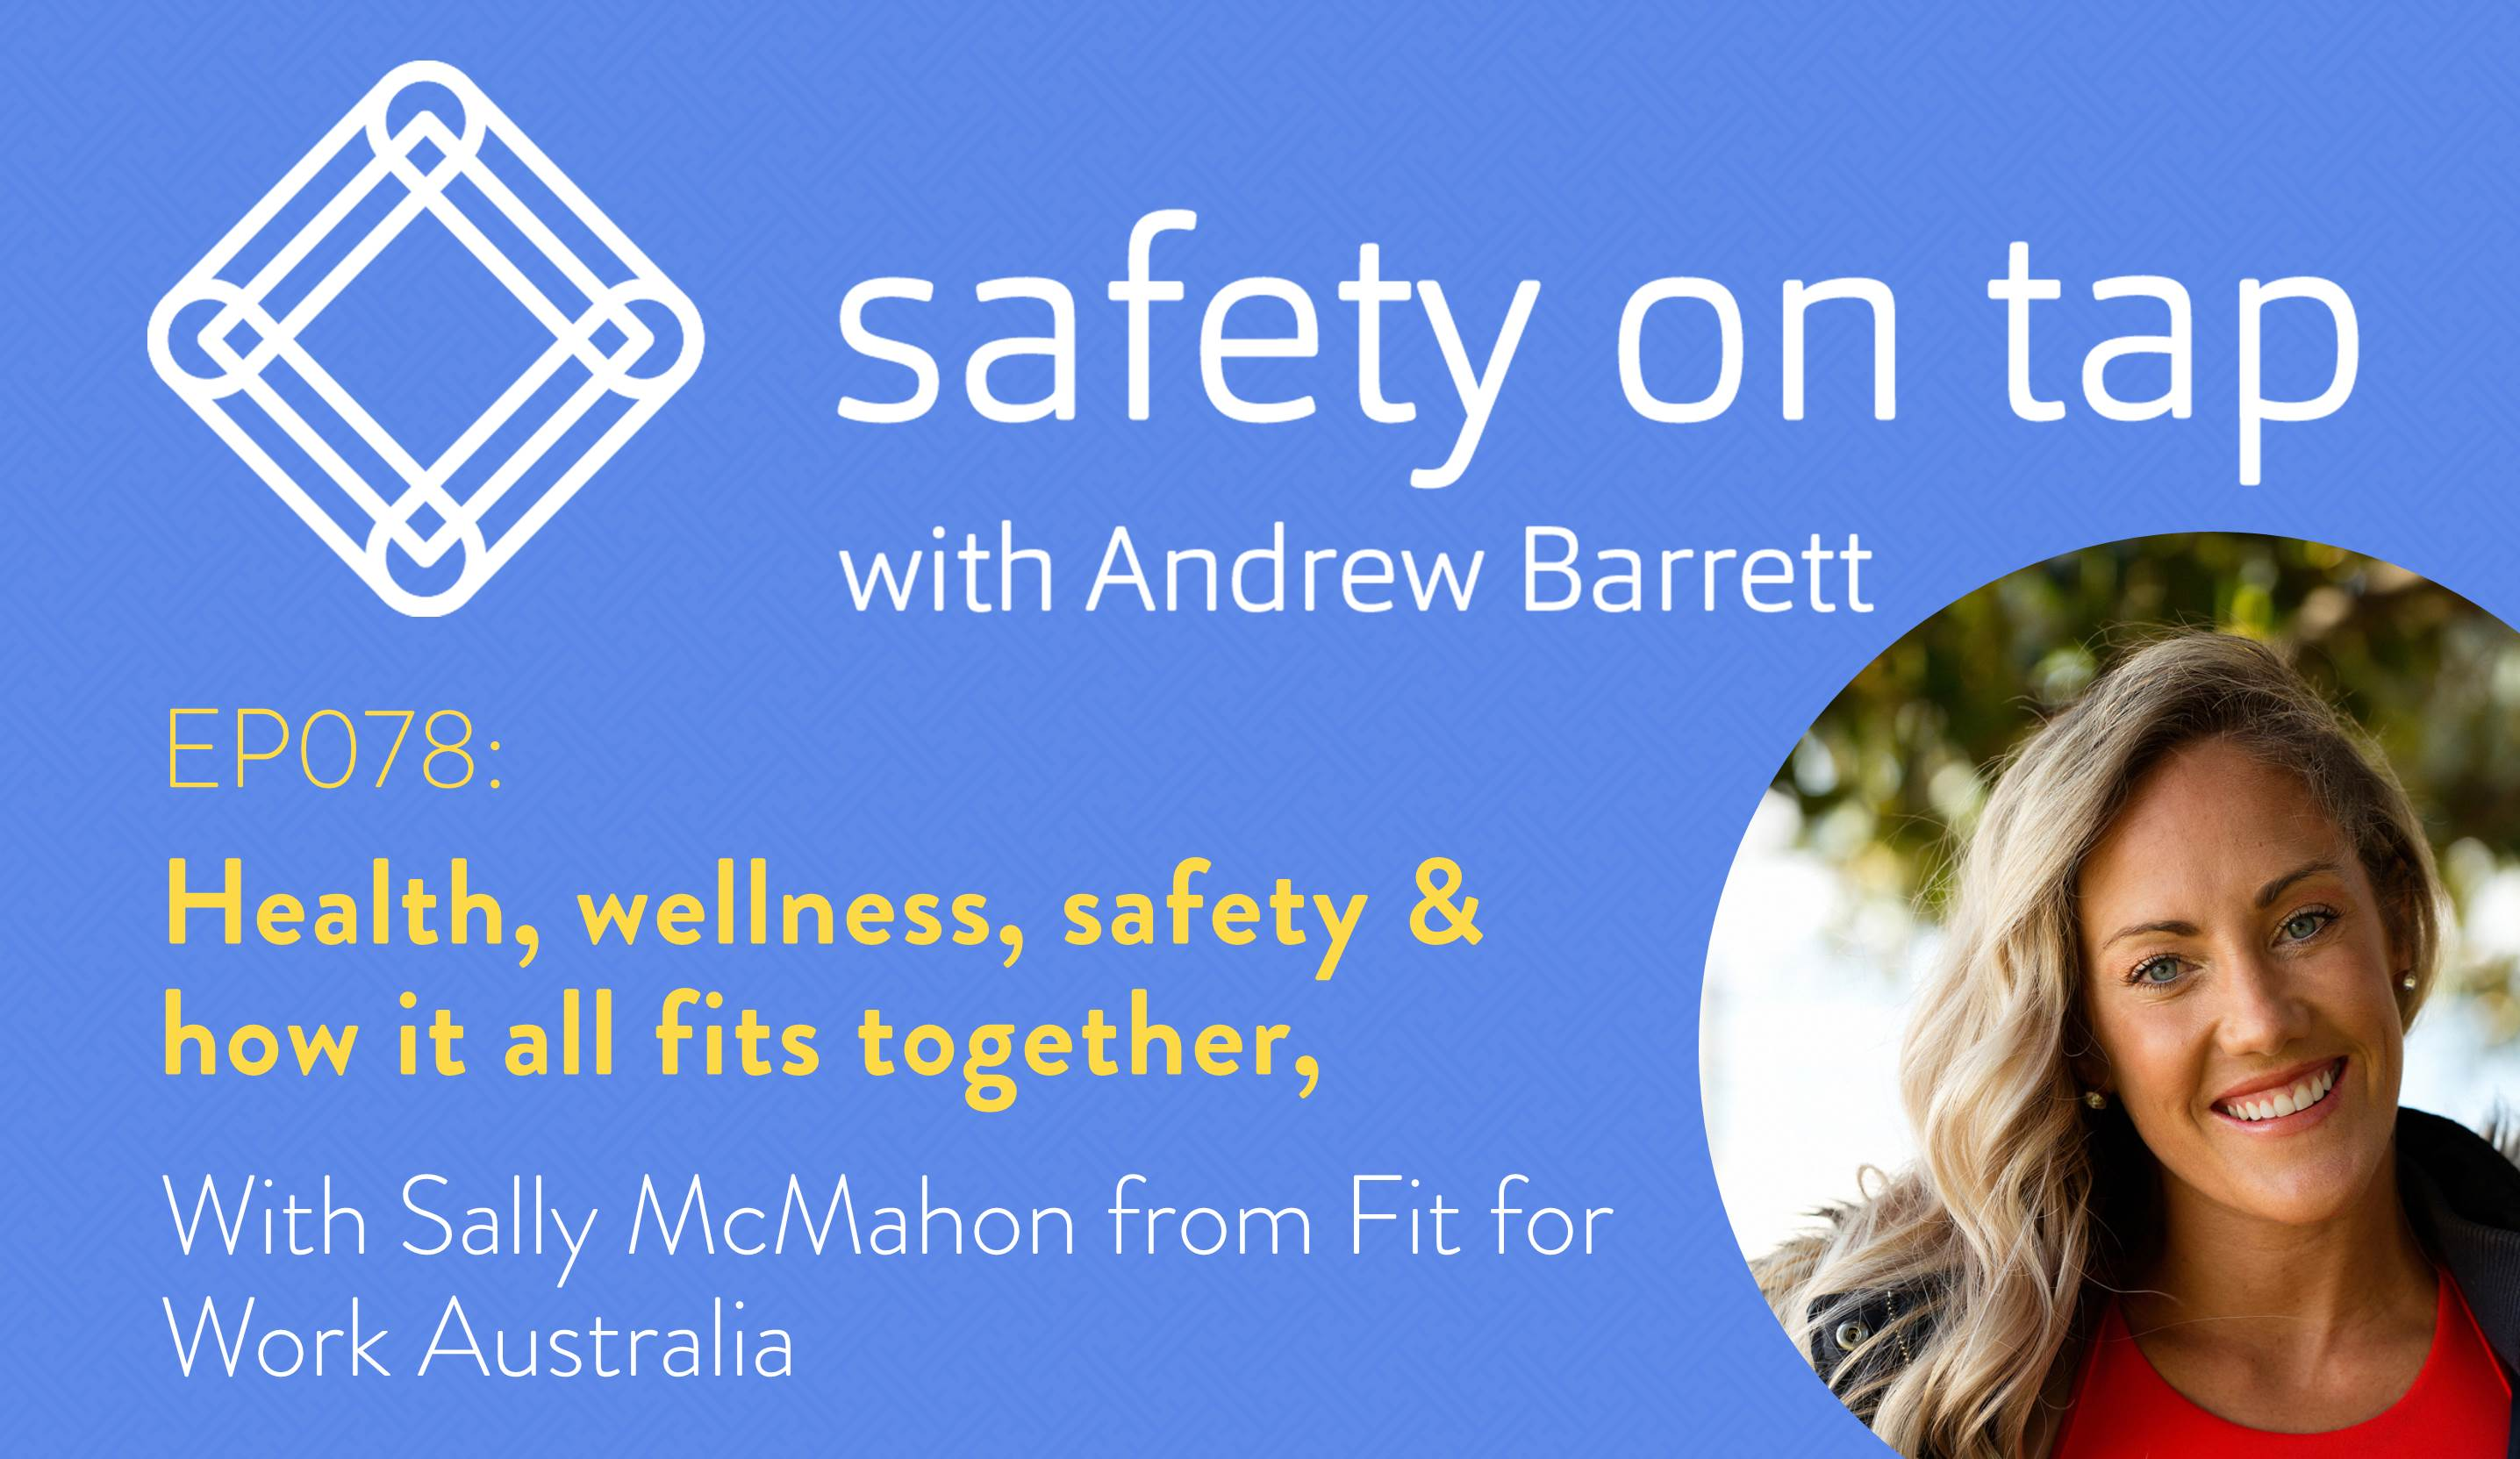 Ep078: Health, wellness, safety & how it all fits together, with Sally McMahon from Fit for Work Australia